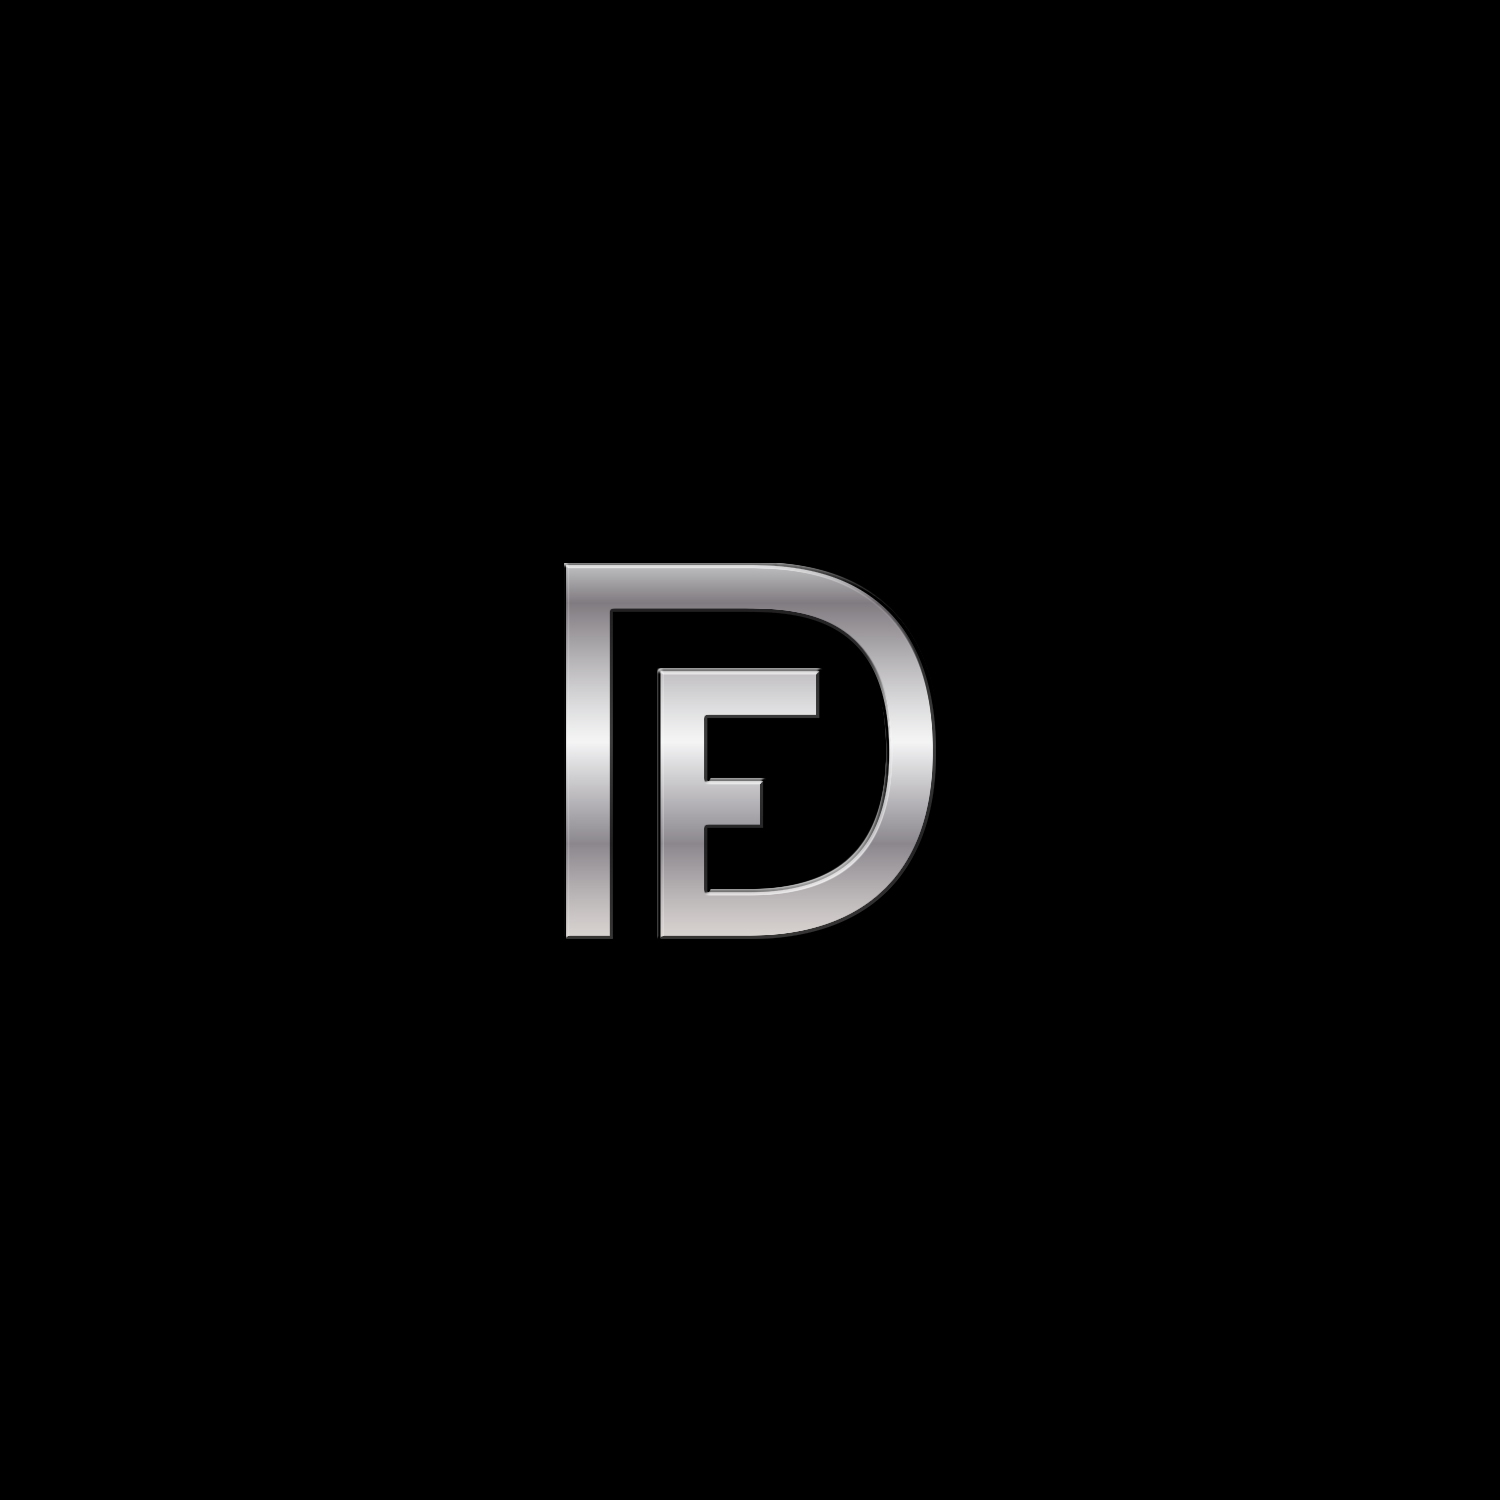 Bold, Modern, Home Builder Logo Design for FD by DBDesign.